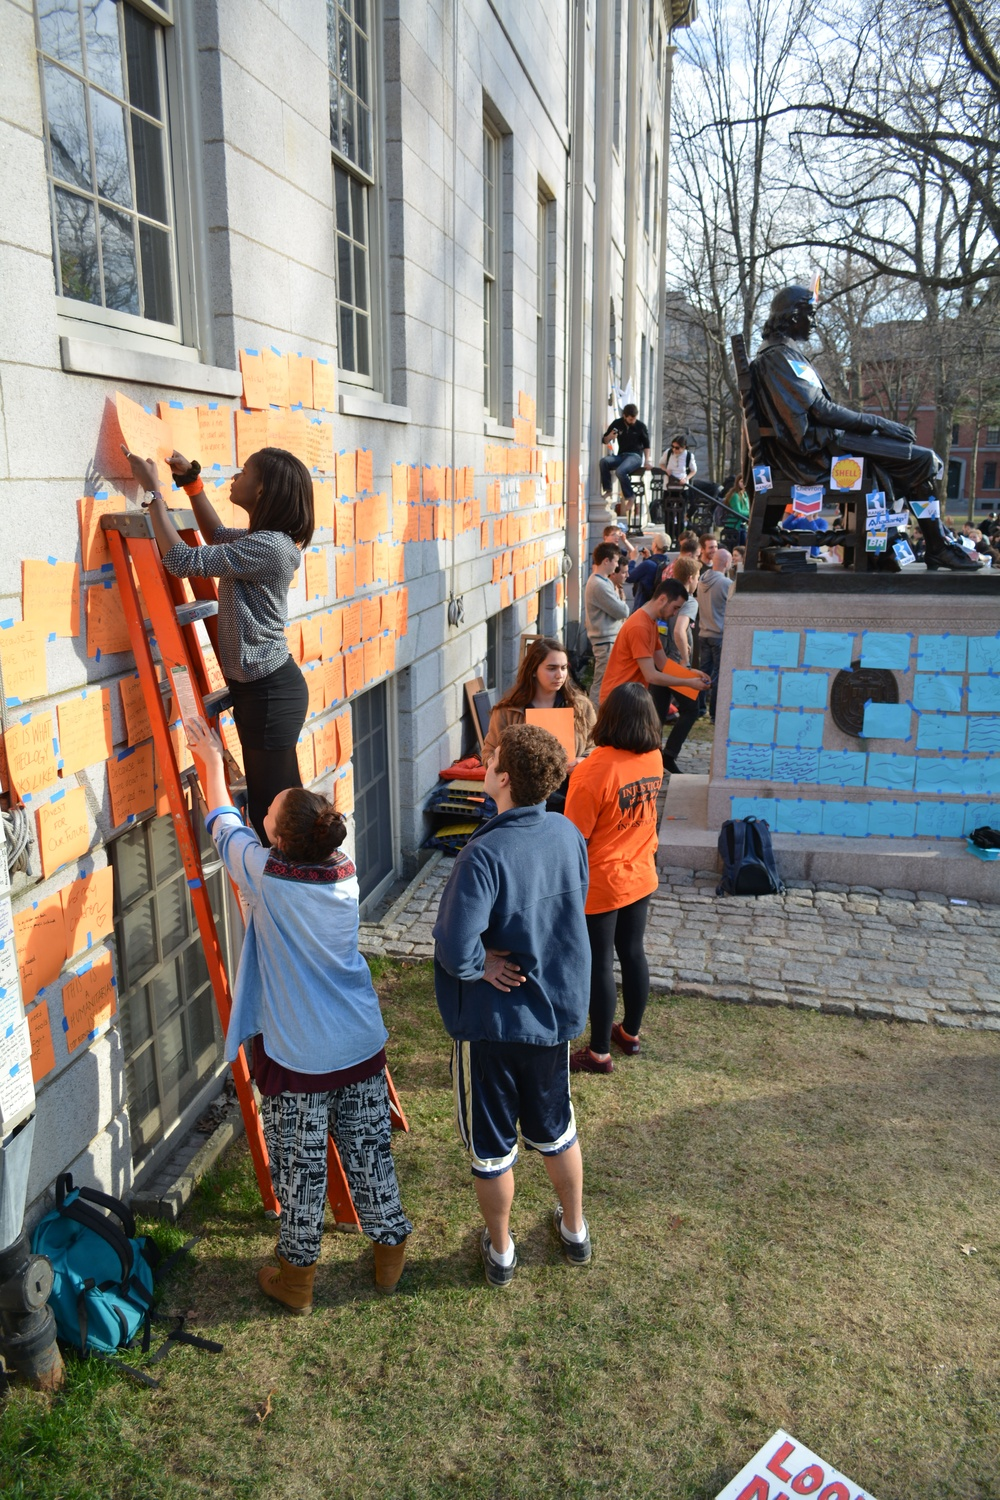 While other protesters lined up along the perimeter of University Hall, a student hangs up messages supporting the Divest movement written on orange sheets of paper. In the background, pictures of oil company logos are taped on the statue of John Harvard.